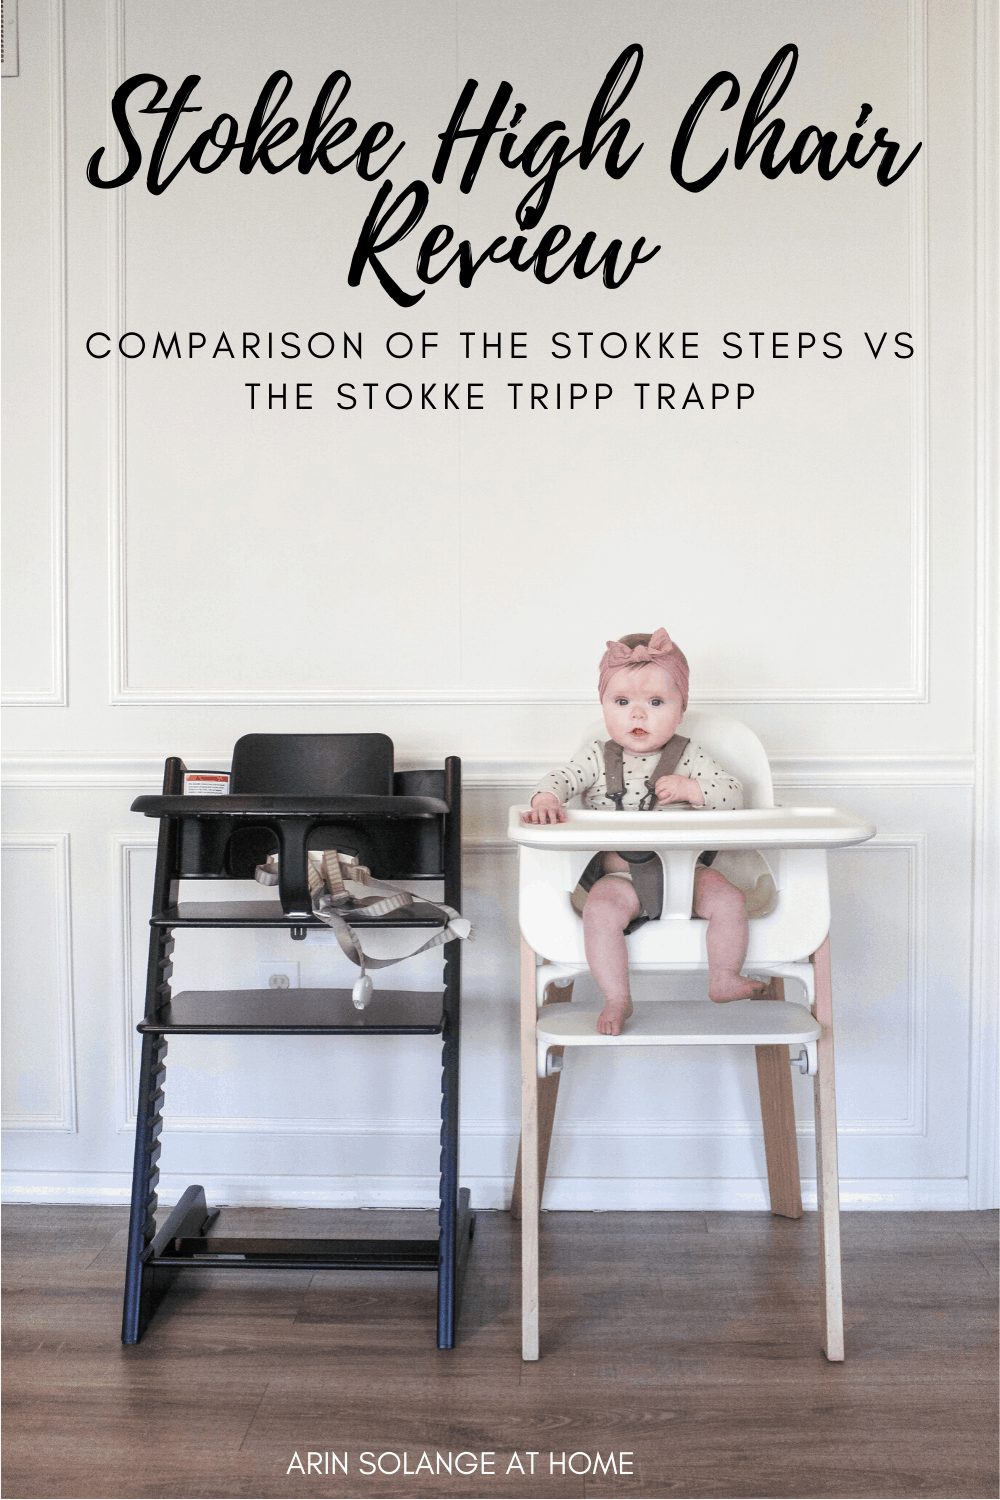 Stokke High chairs - Steps vs Tripp Trapp